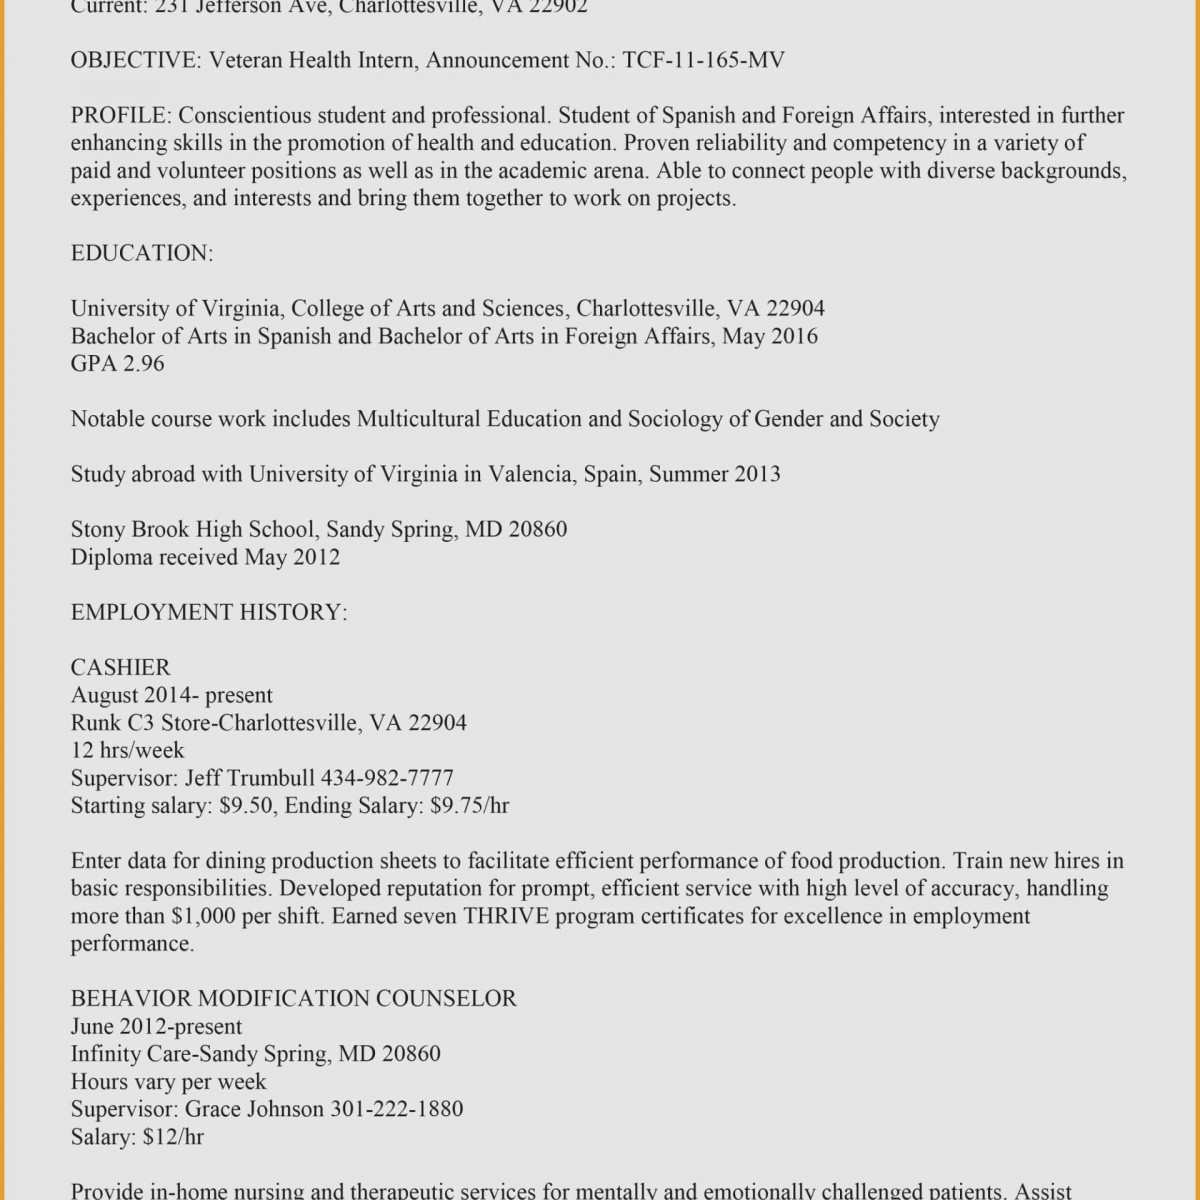 Resume Employment History - What Should Be Included In A Resume Fresh Beautiful My Resume Work